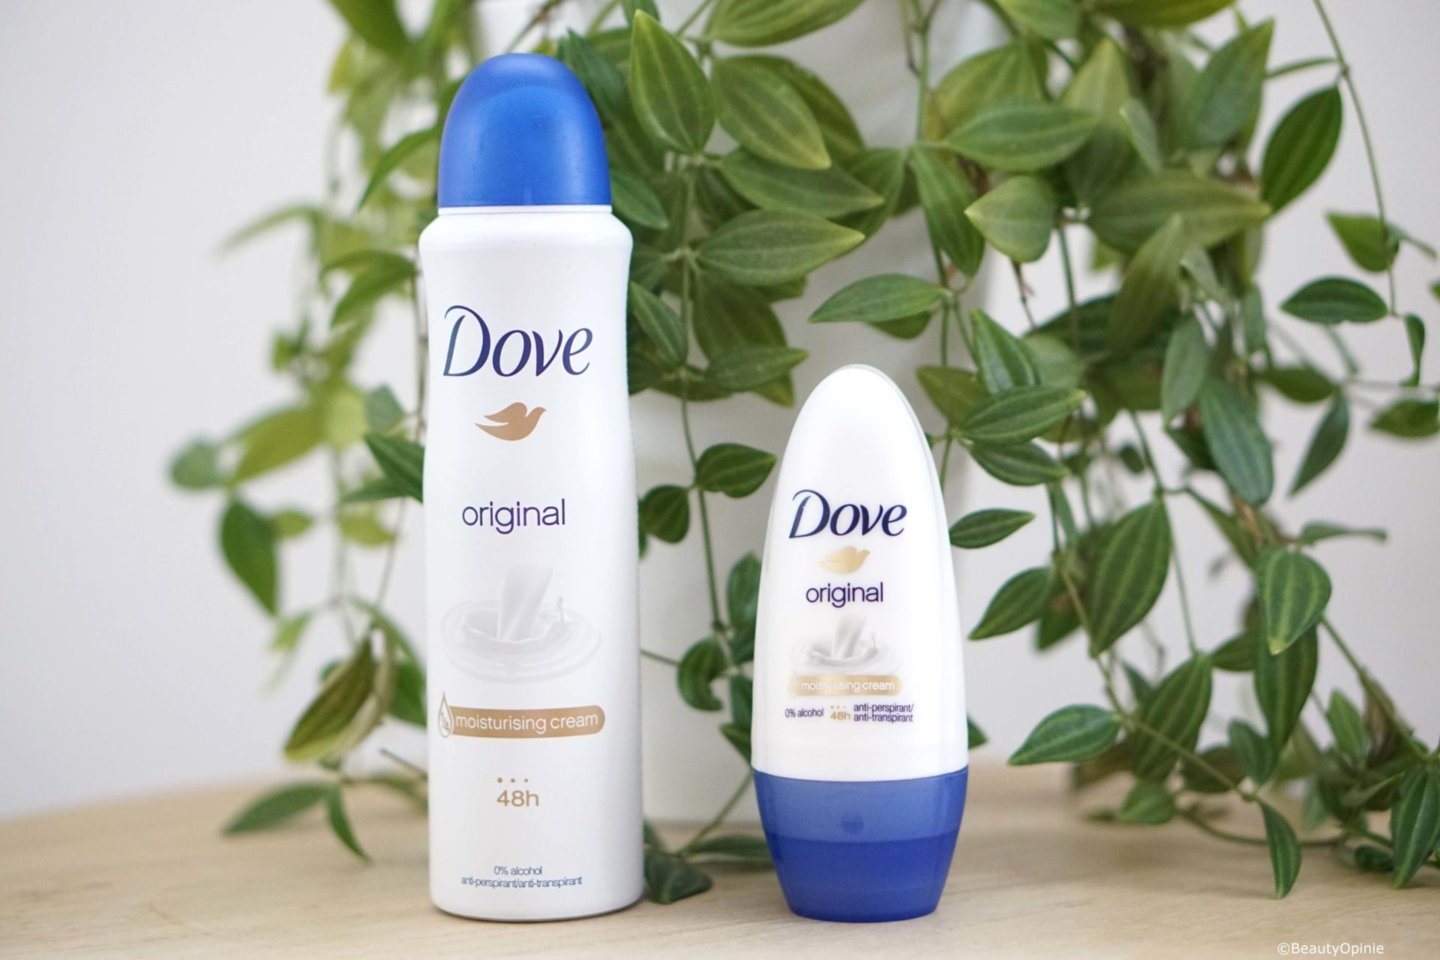 Dove #wouldyouswitch